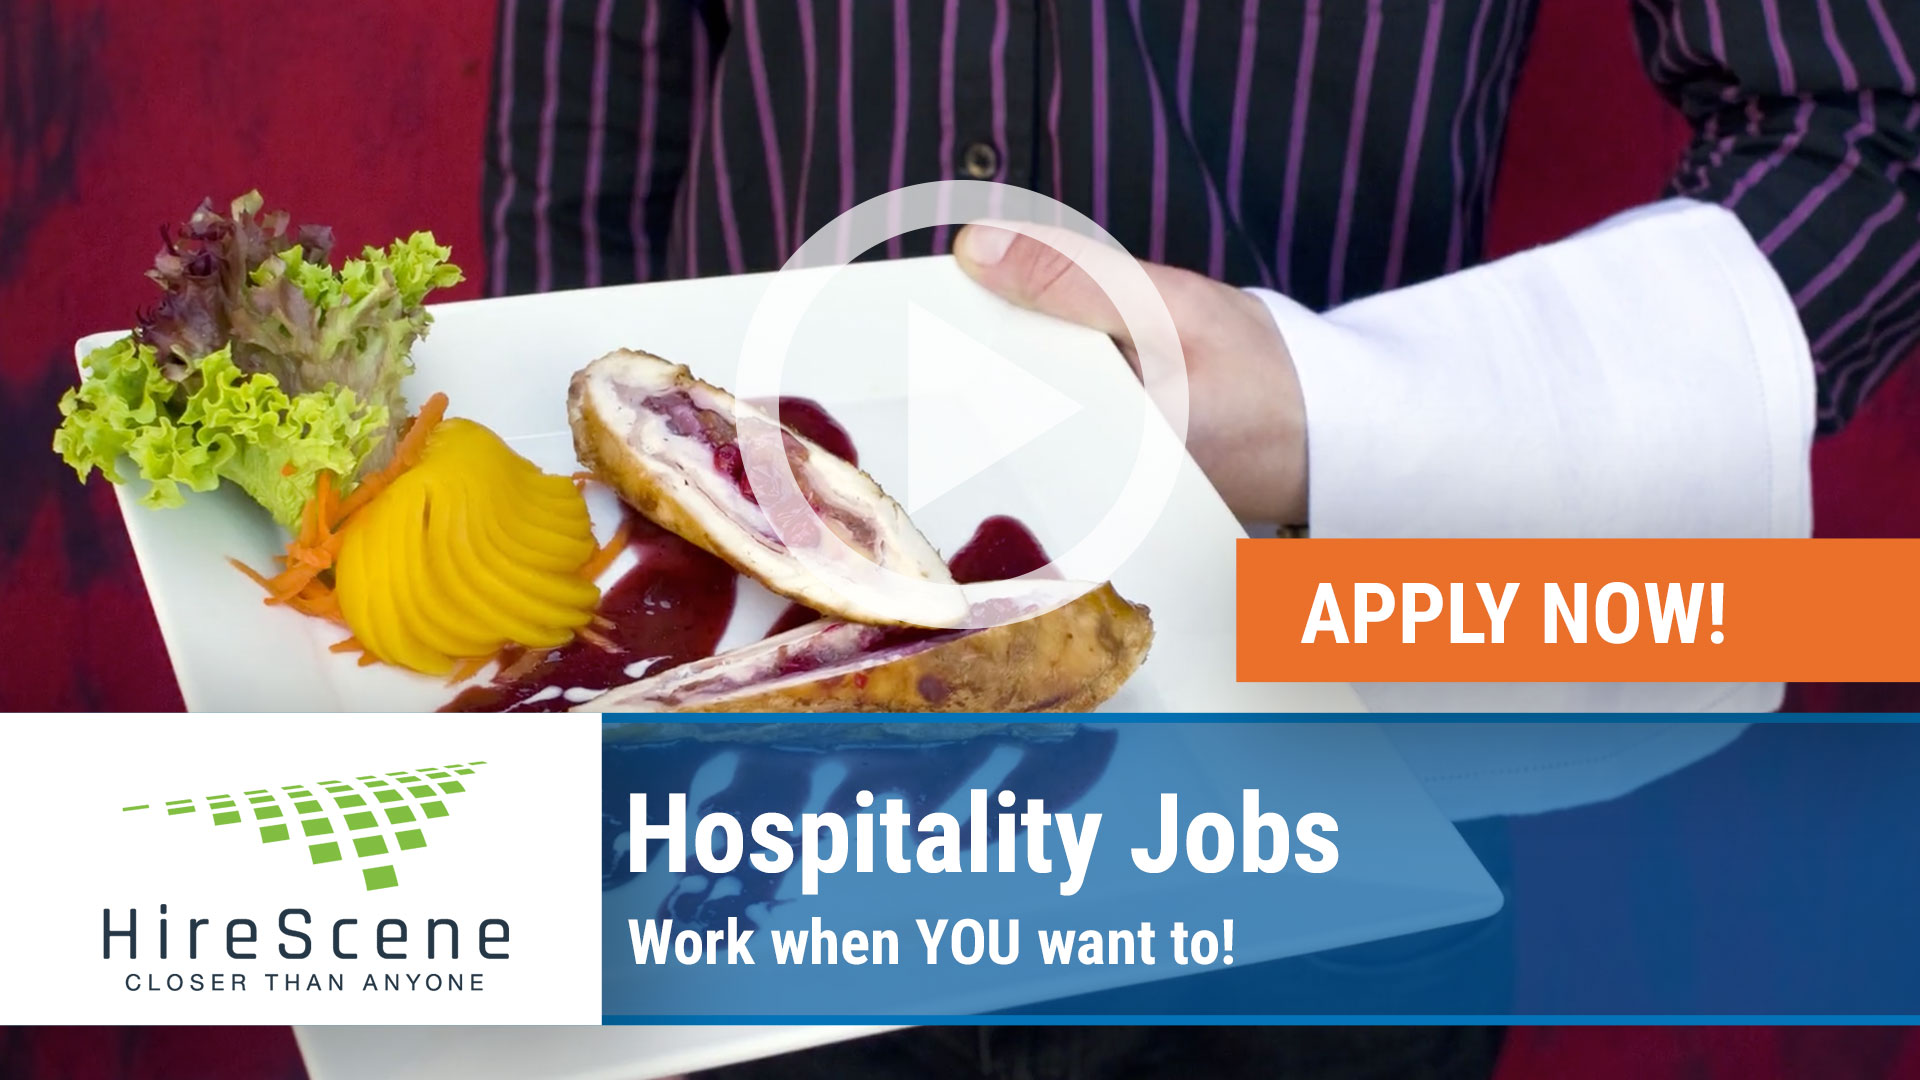 Watch our careers video for available job opening HOSPITALITY JOBS WORK WHEN YOU WANT TO in Raleigh, NC